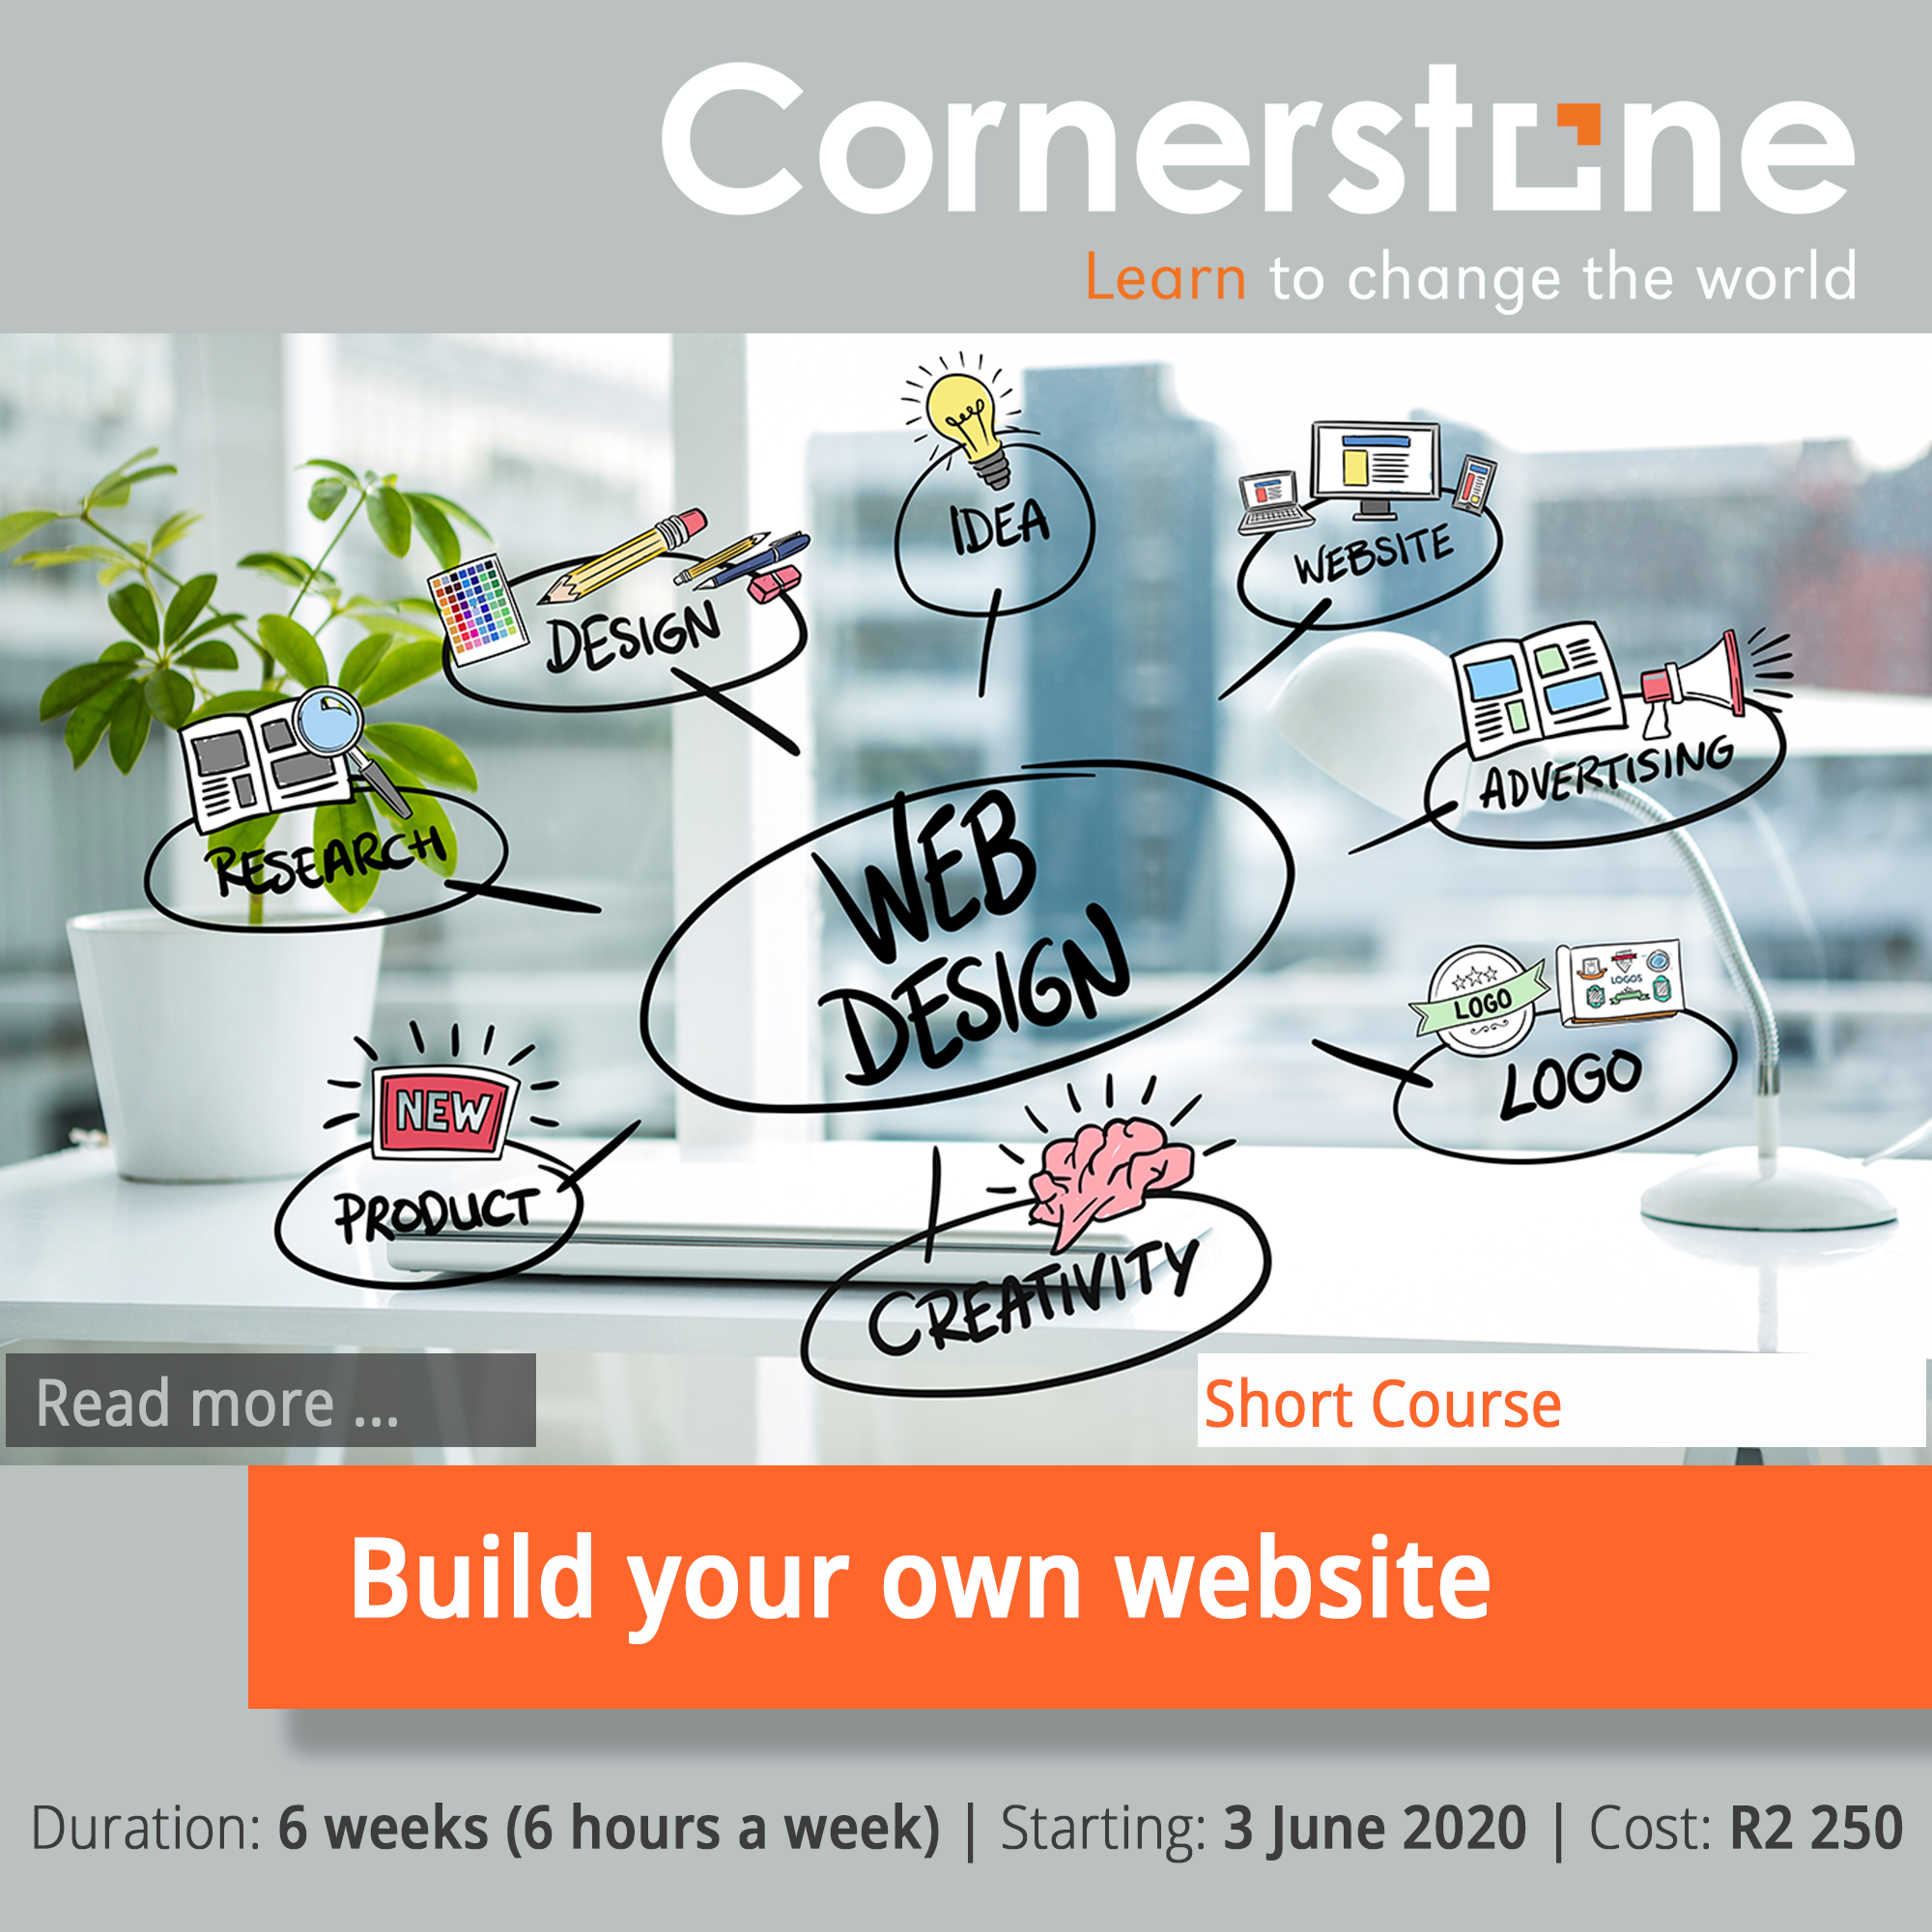 BuildWebsite2